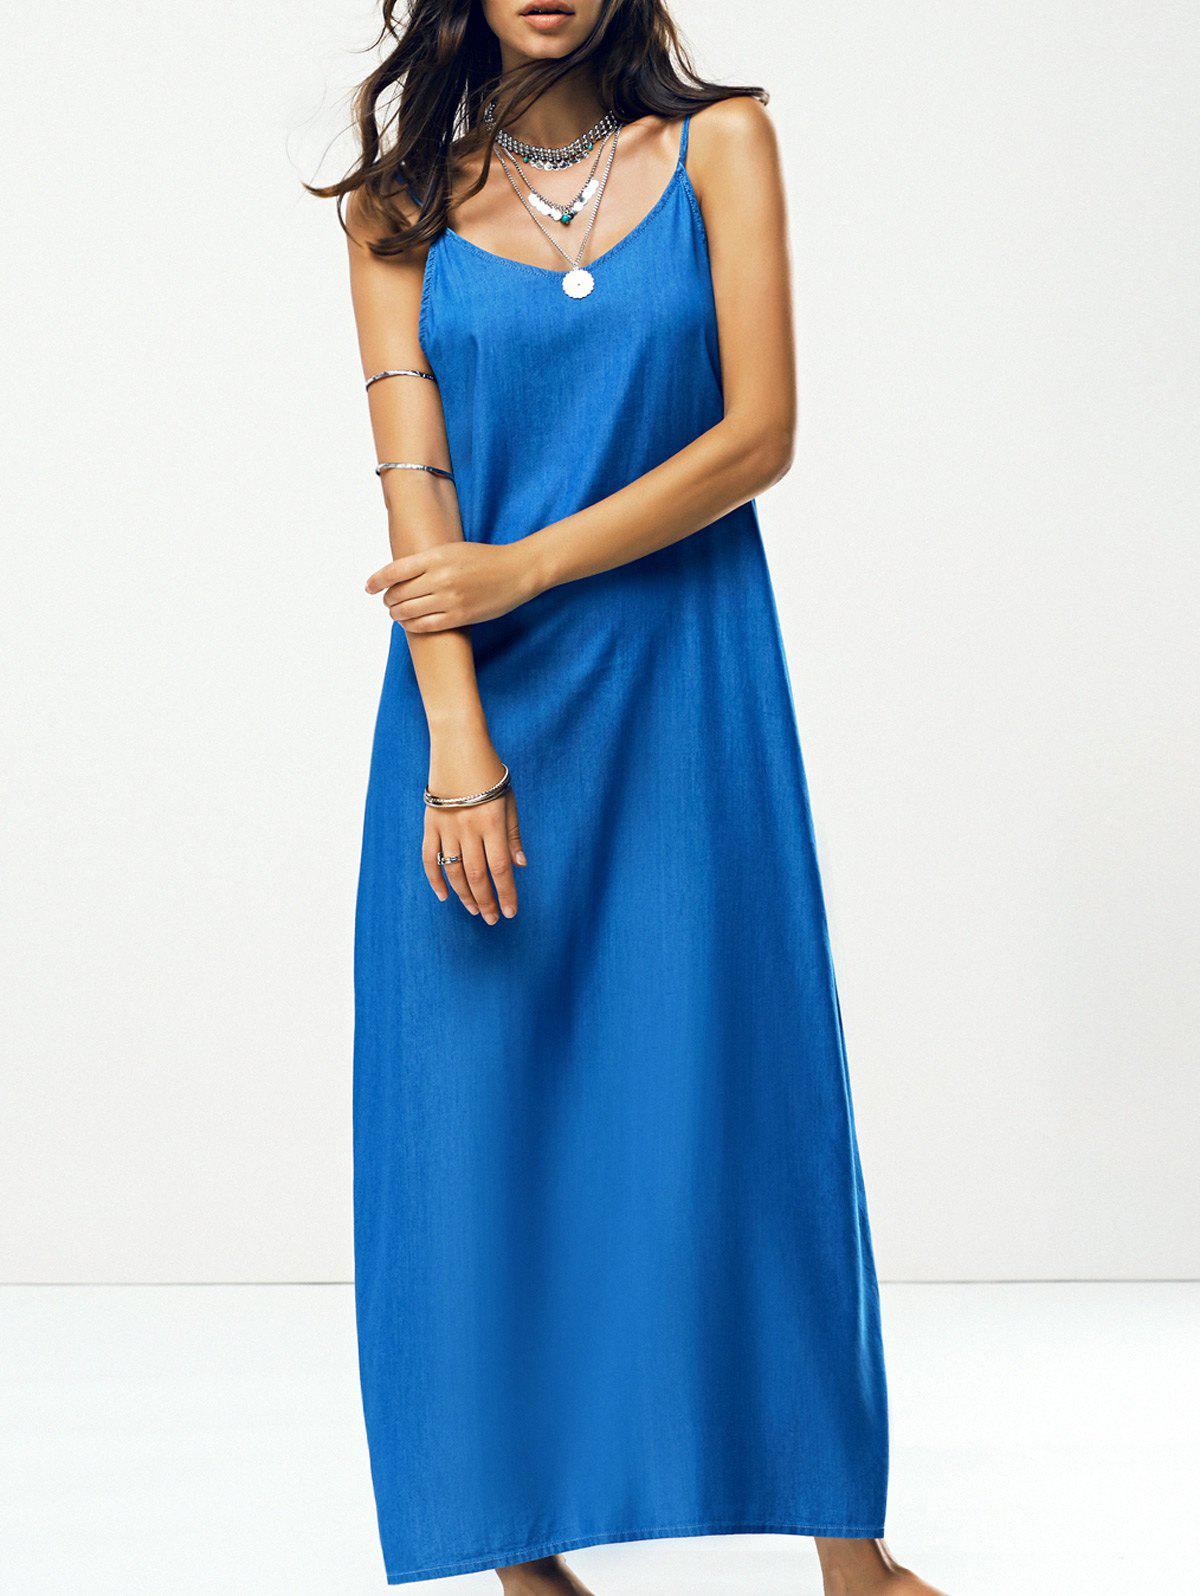 Spaghetti Strap Solid Color Backless Maxi Dress - DENIM BLUE S